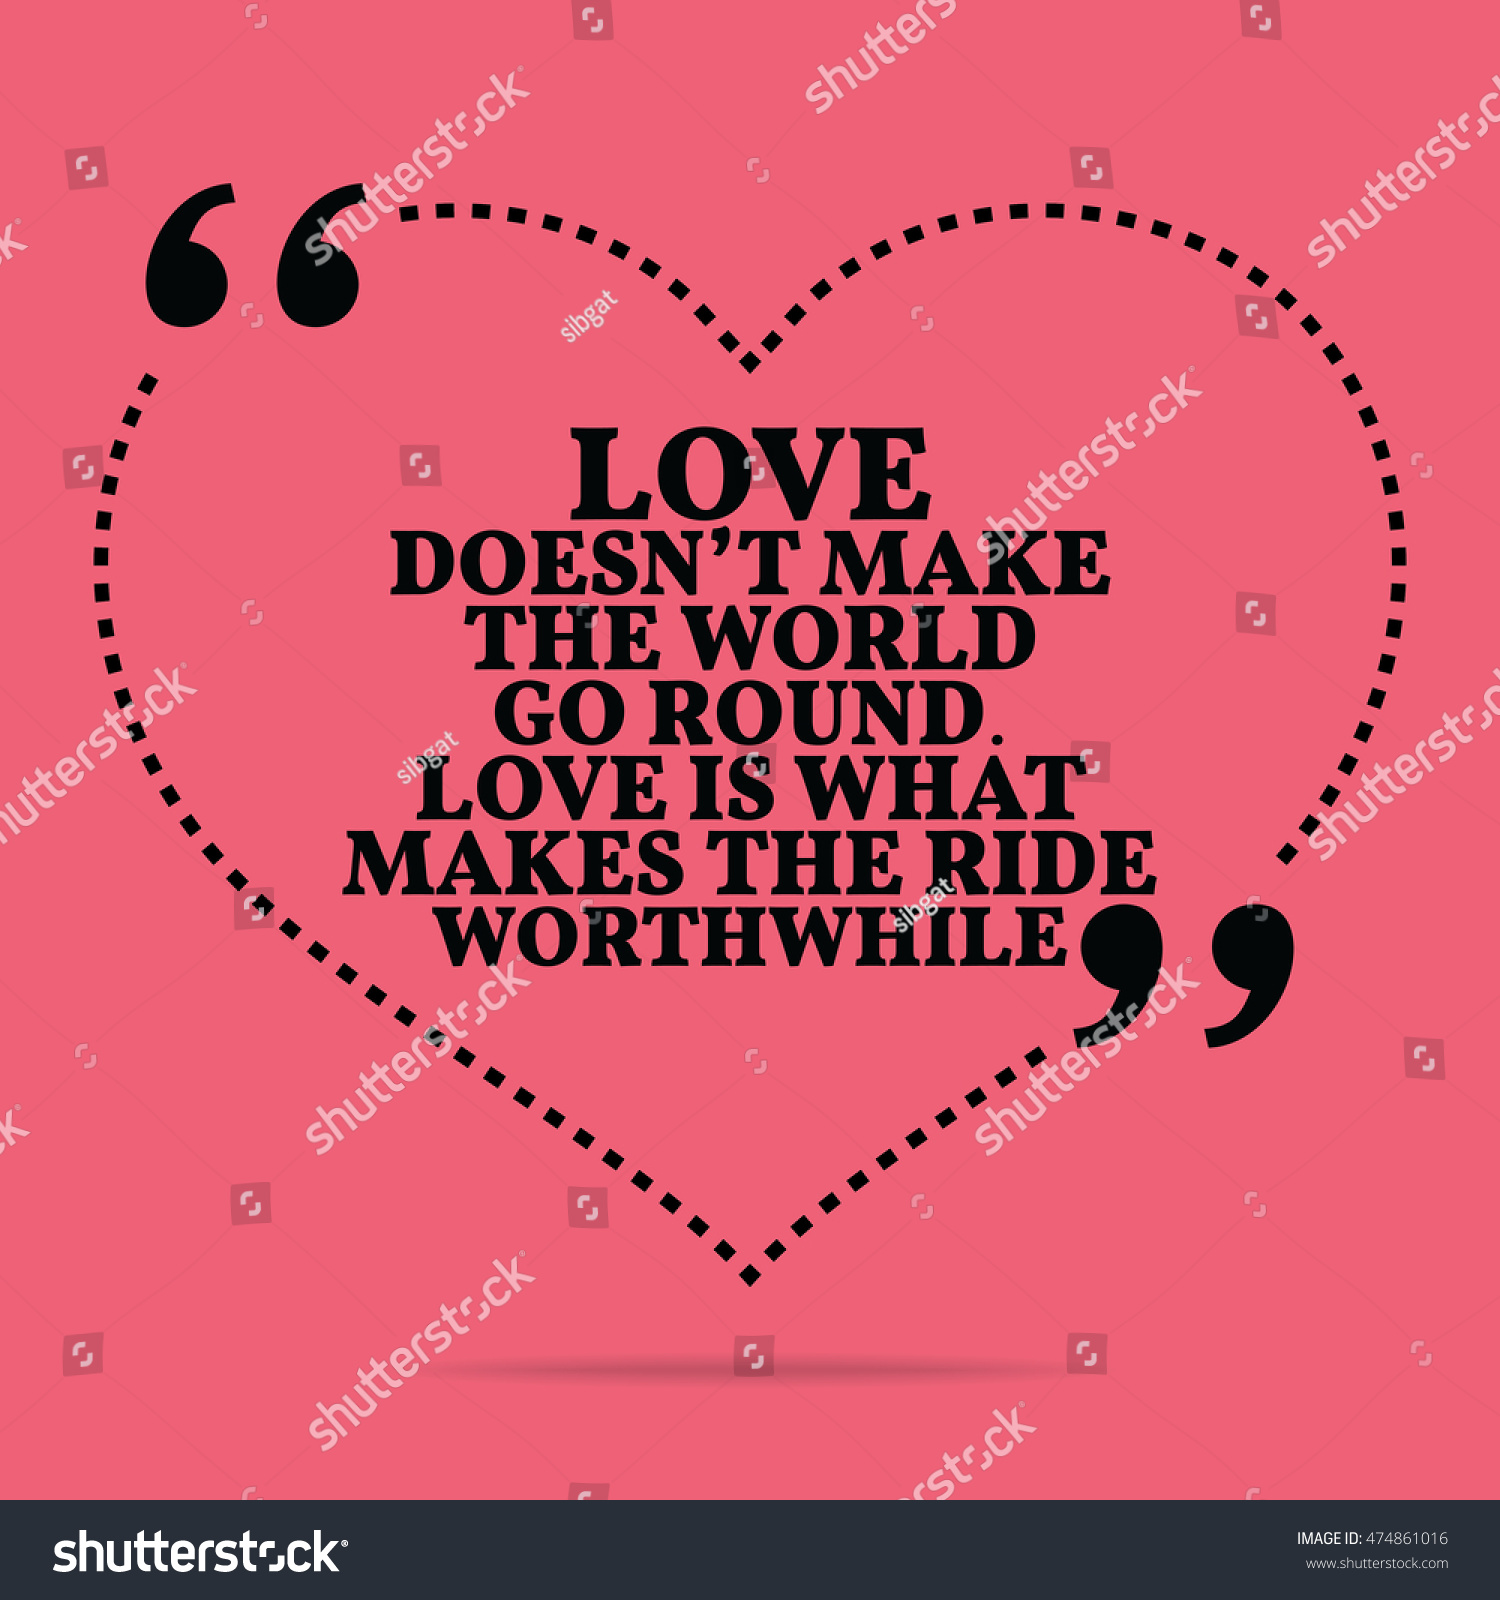 Quotes On Love And Marriage Love And Marriage Quotes  Page 6  The Best Love Quotes